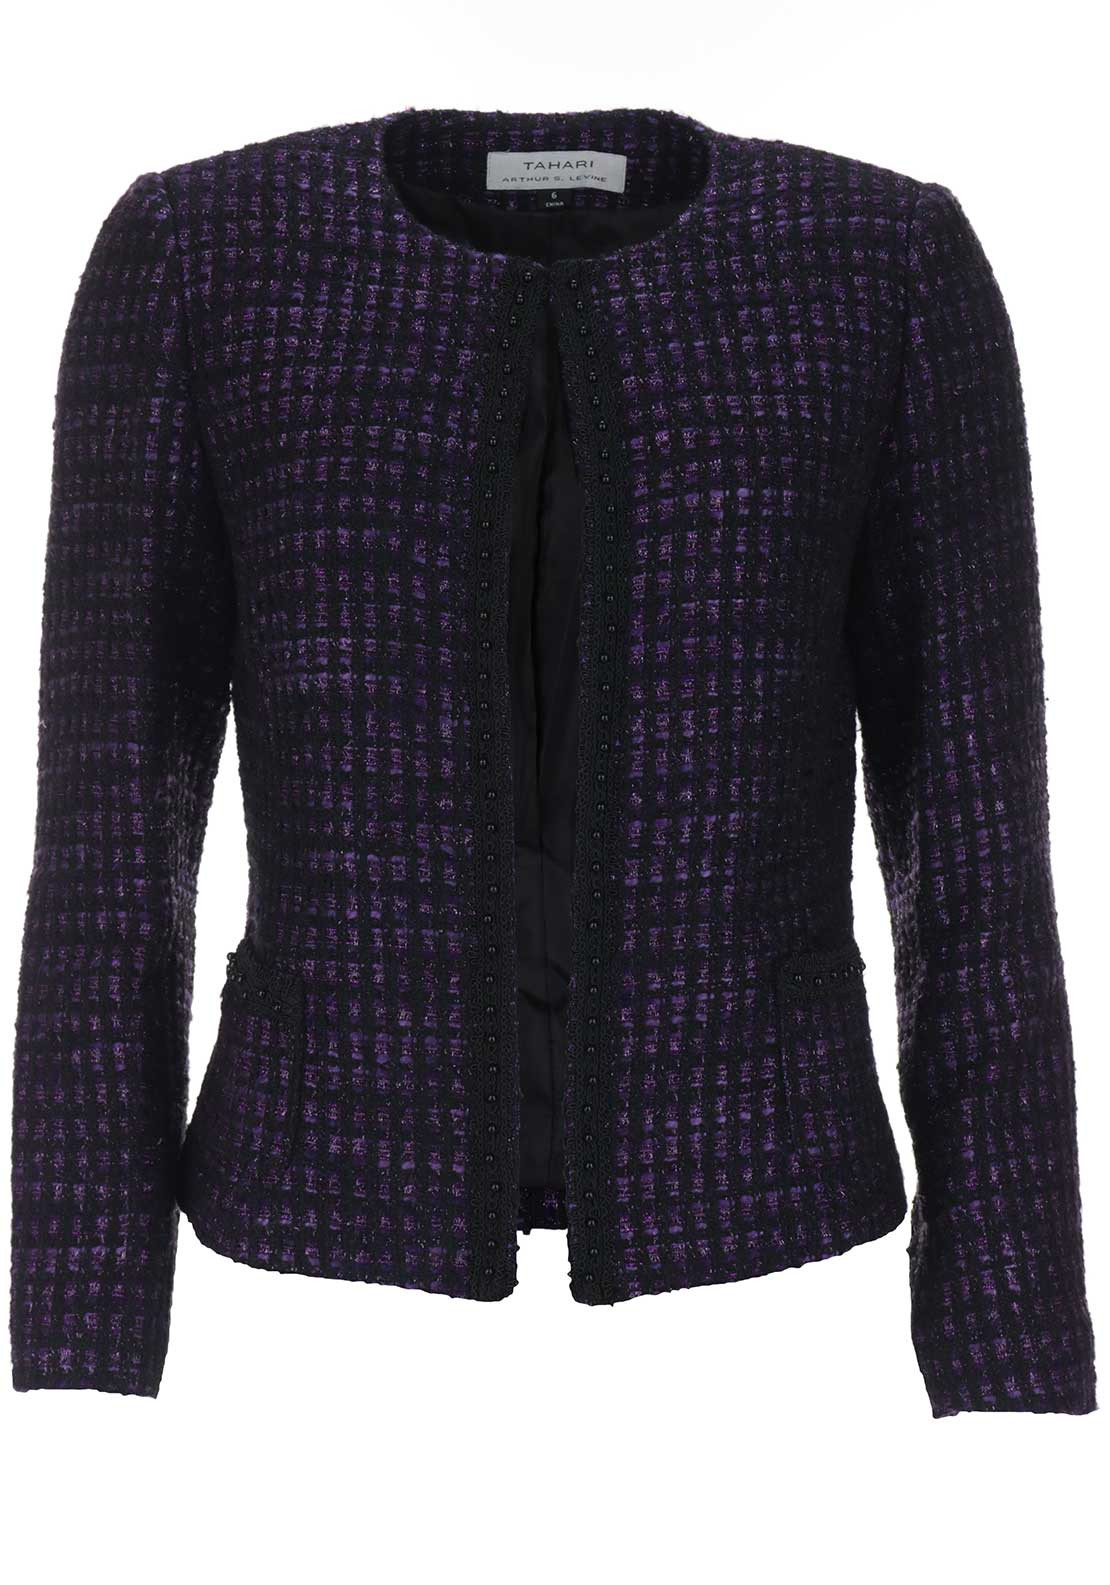 Tahari by Arthur S. Levine Boucle Shimmer Jacket, Purple